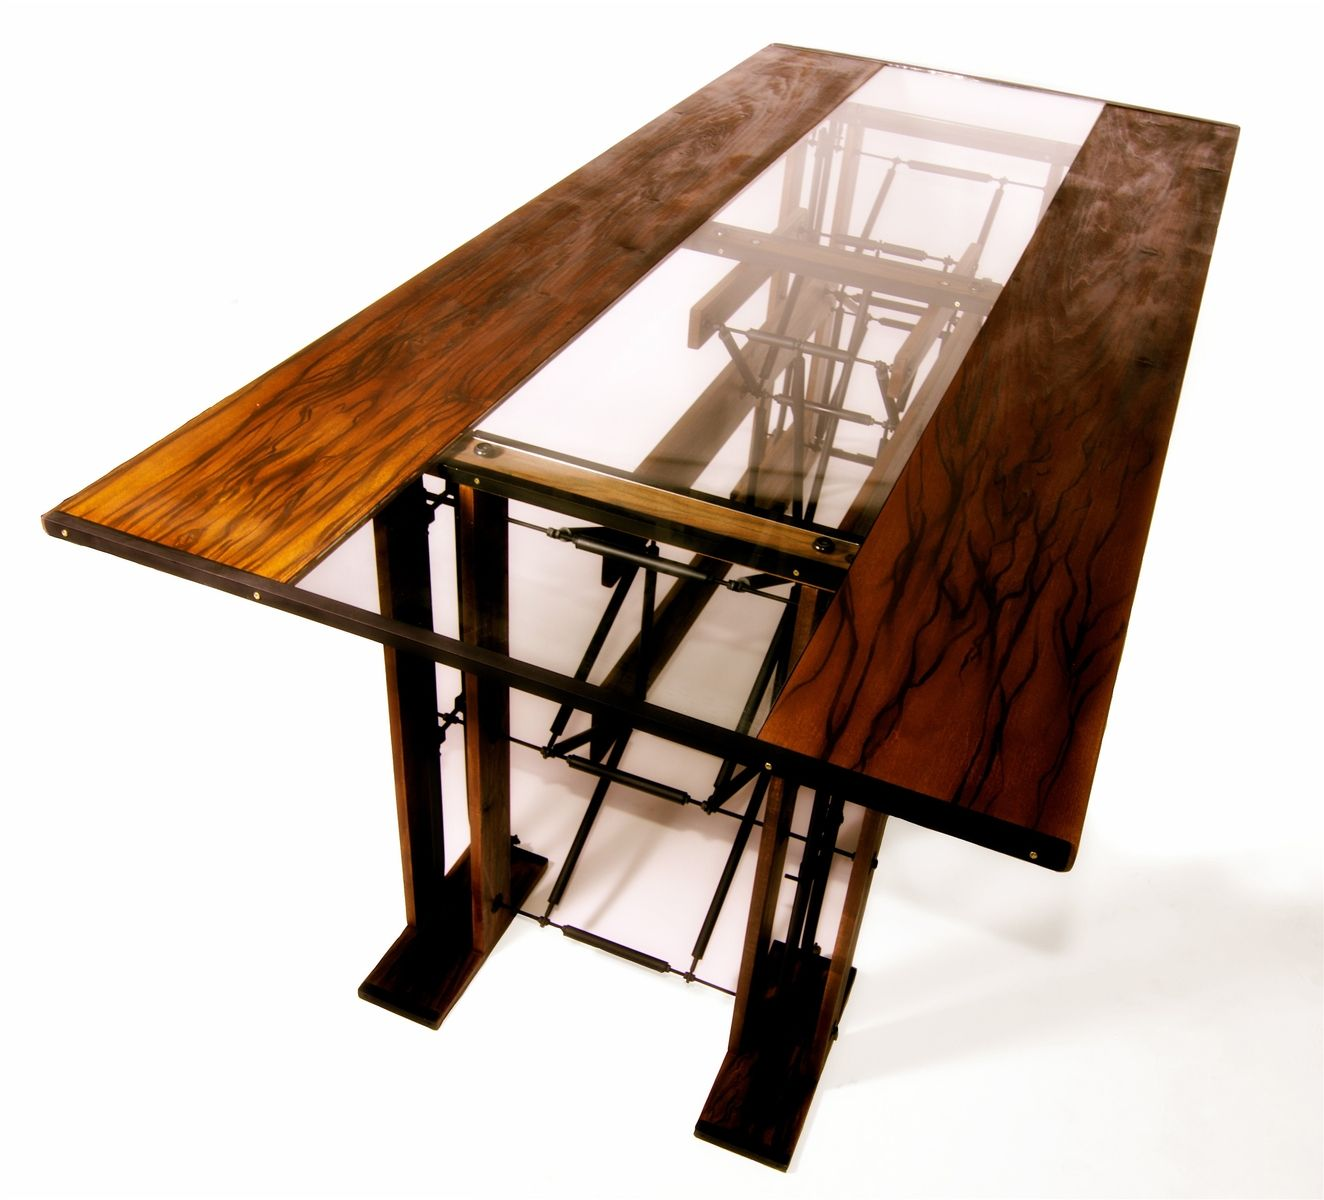 Hand made custom contemporary industrial eclectic dining for Contemporary dining table designs